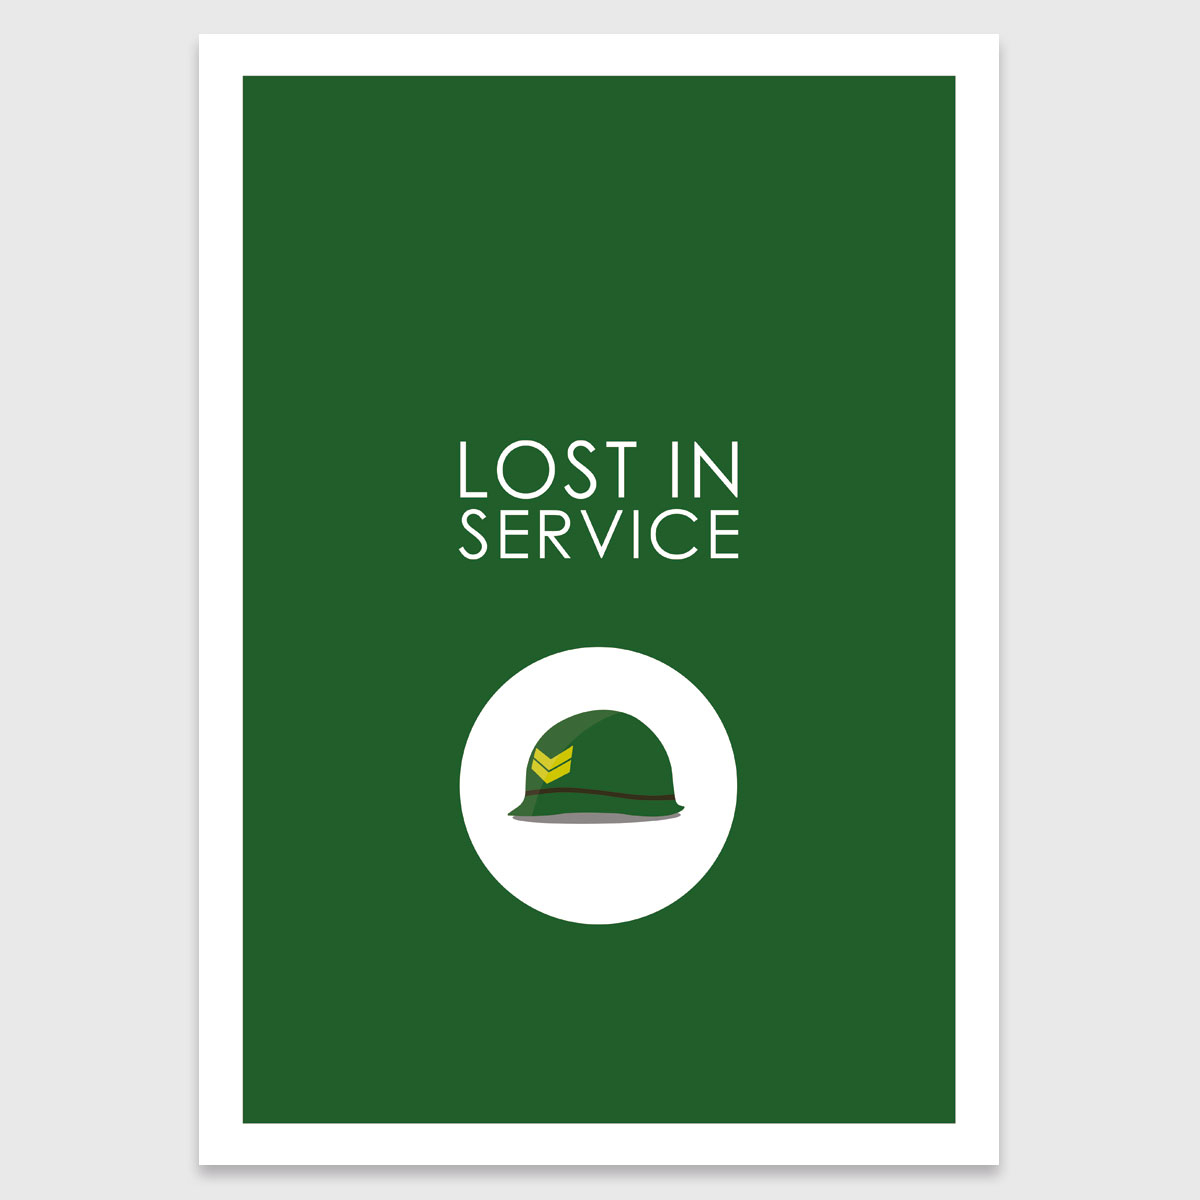 Photograph: Retro print: Lost in service